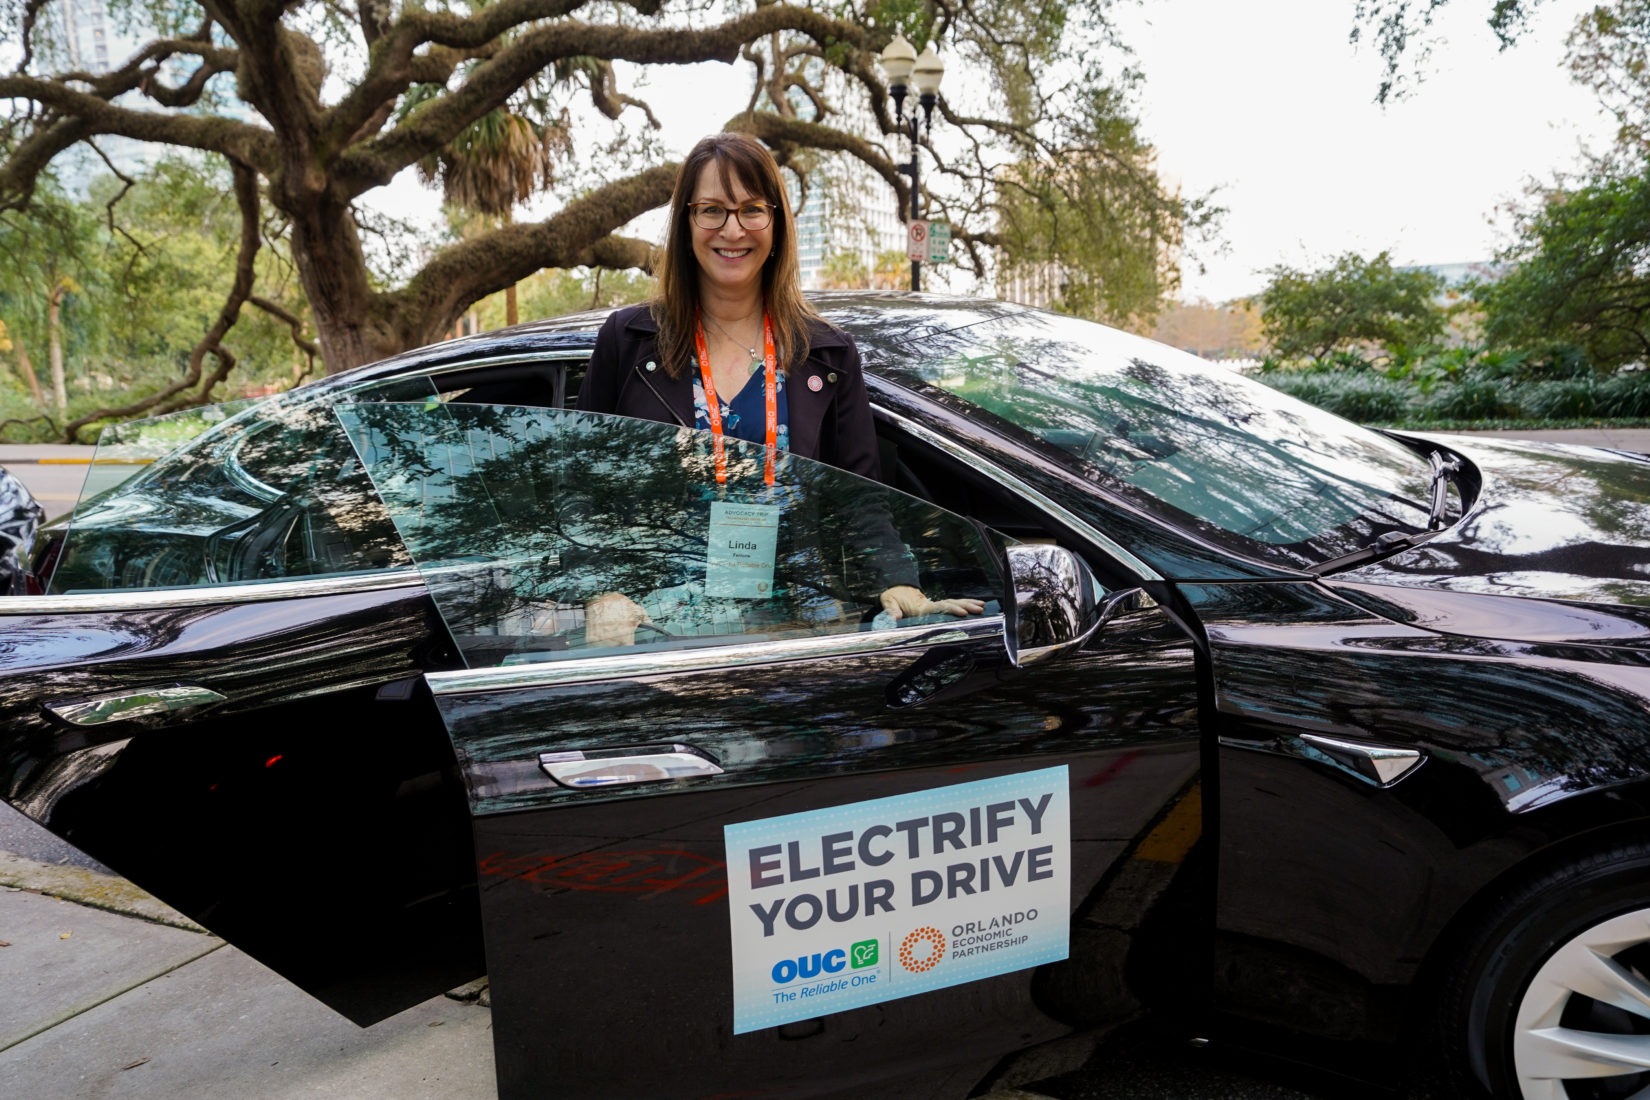 OUC Electric Tesla Tallahassee Drive Up